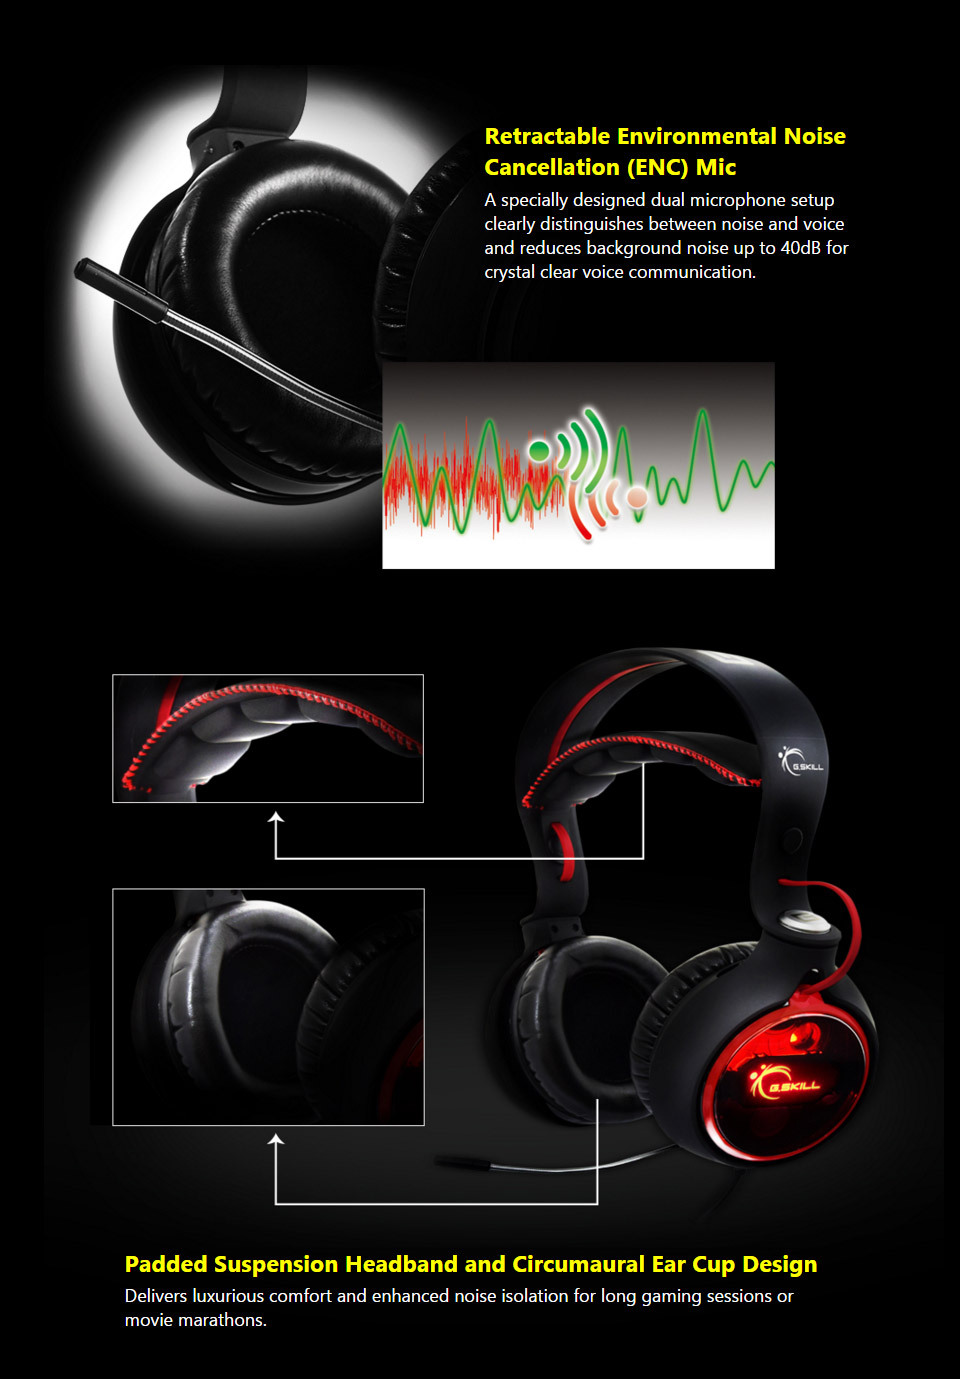 G Skill Ripjaws SR910 Real 7 1 USB Headset [GS-GH-D71NRE